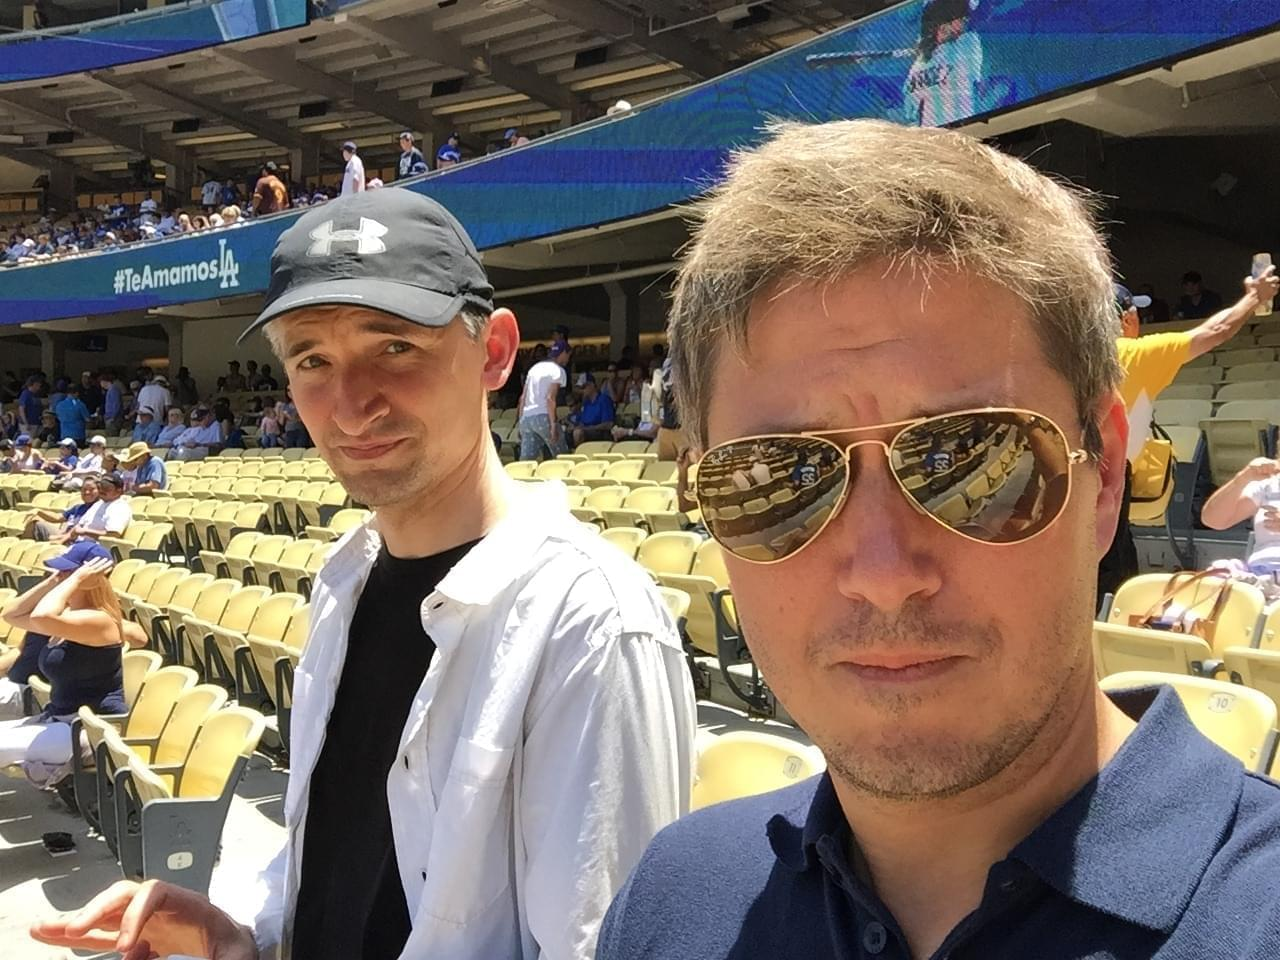 Will Leitch (right) at Dodger Stadium in Los Angeles with Grierson and Leitch podcast co-host Tim Grierson.